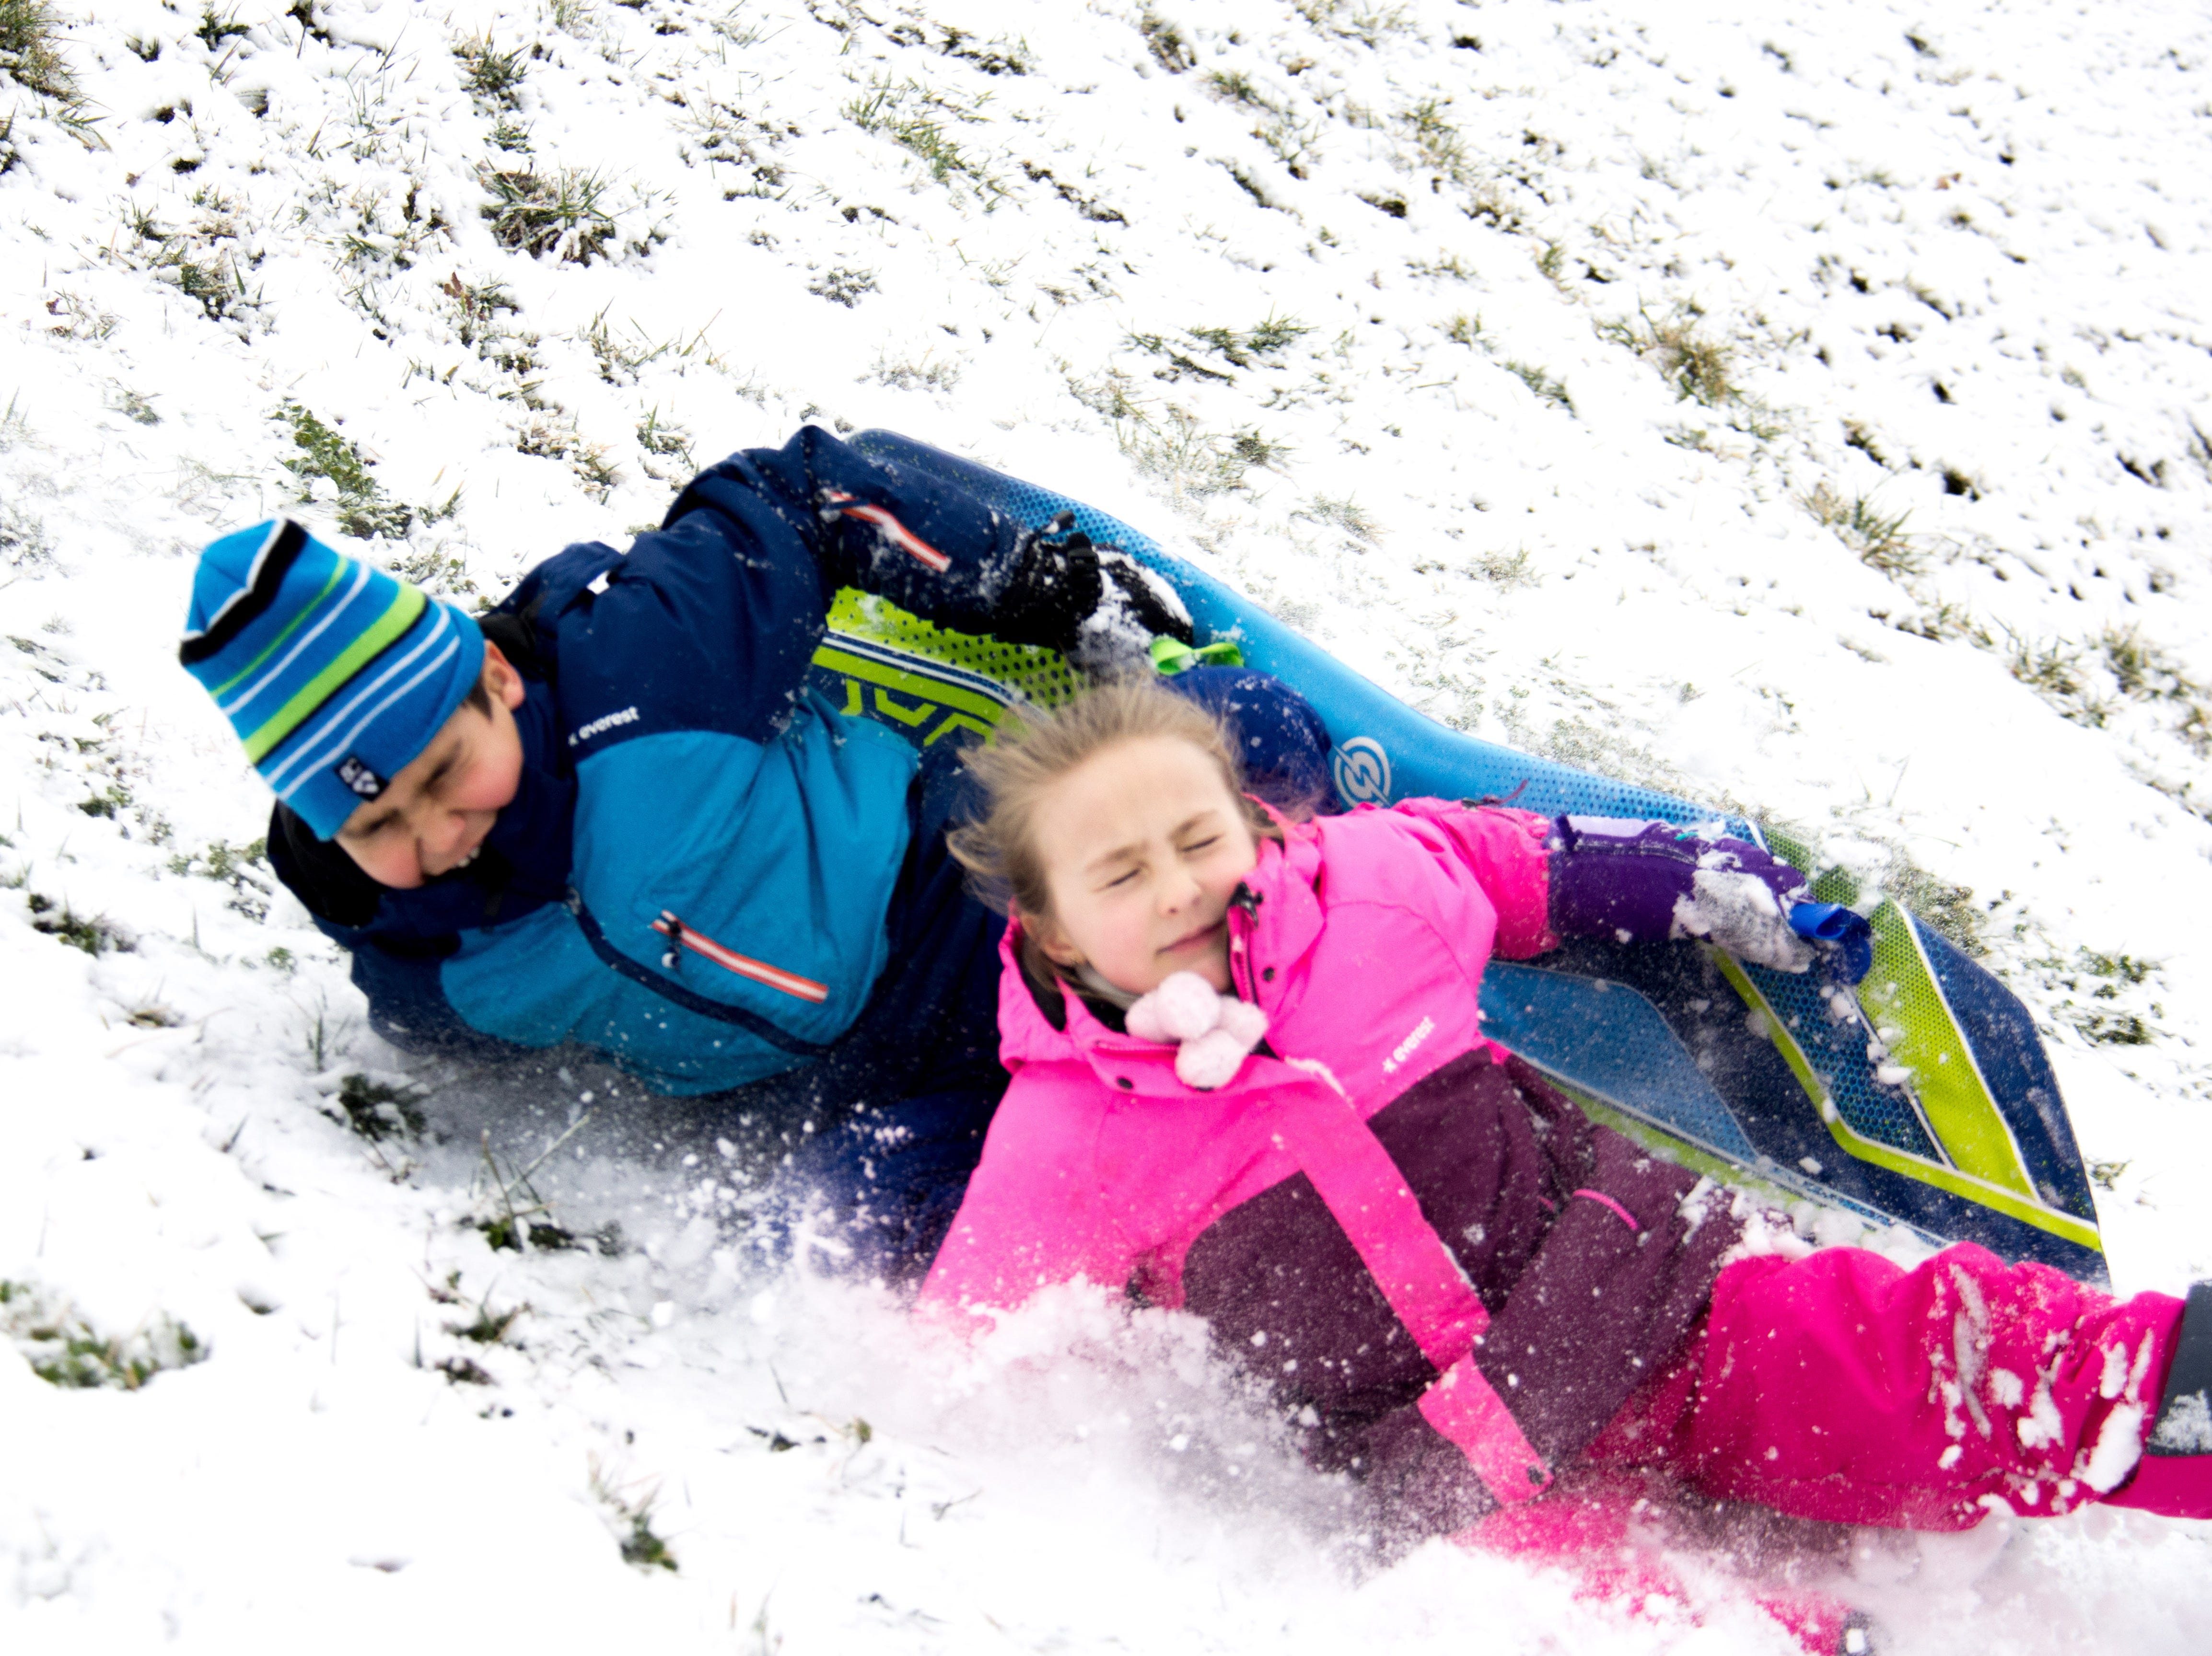 Ian, 9, and 5-year-old Isabella wipe out while sledding down a hill at  Lakeshore Park in Knoxville on Jan. 29, 2019.